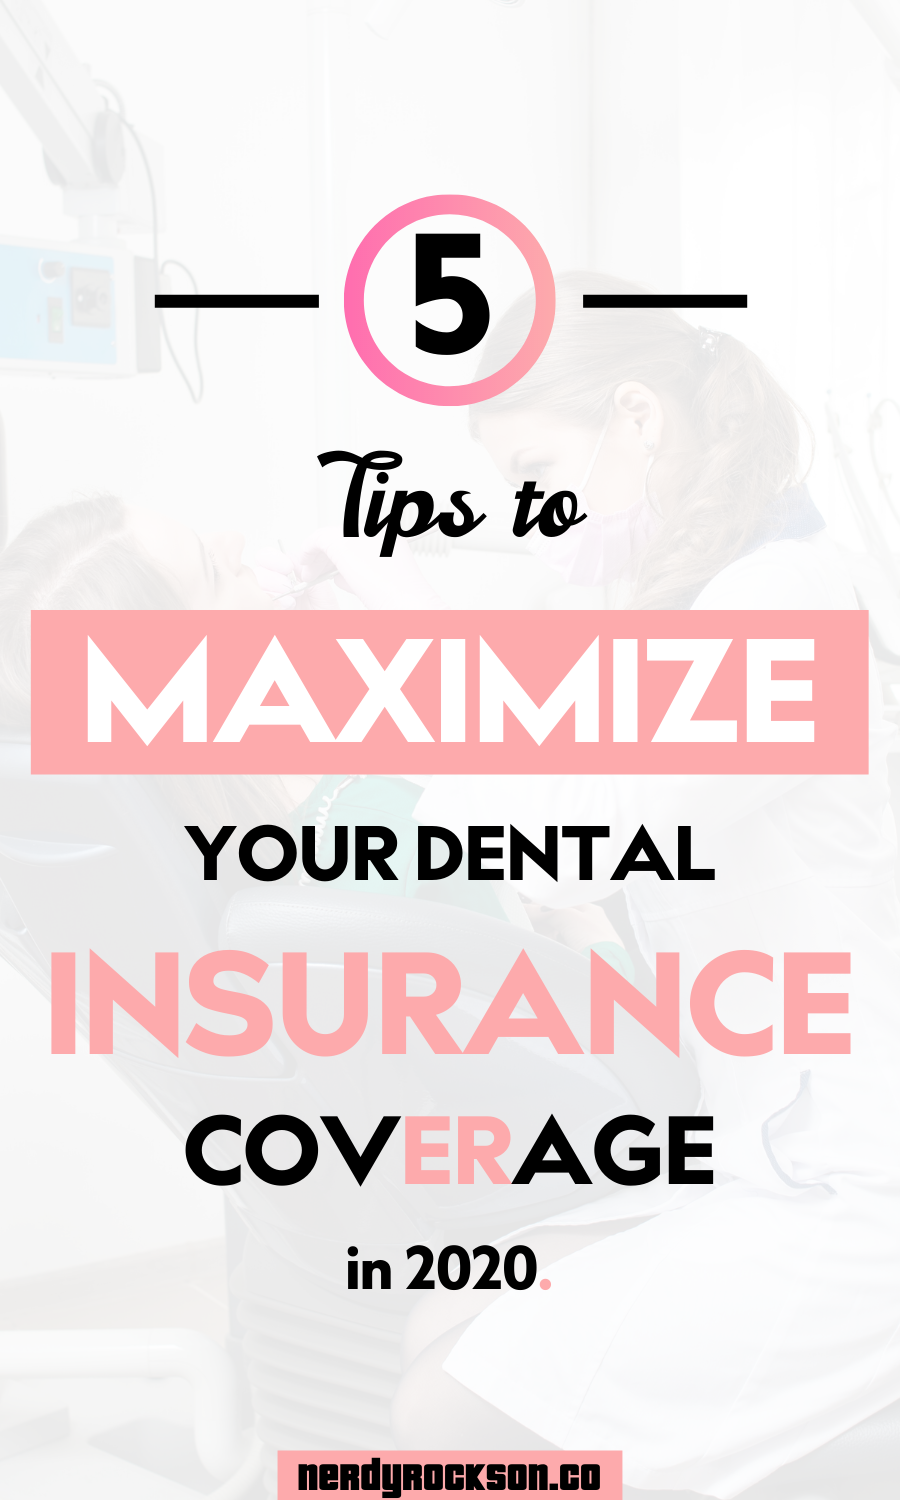 5 Tips to Maximize Your Dental Insurance Coverage in 2020